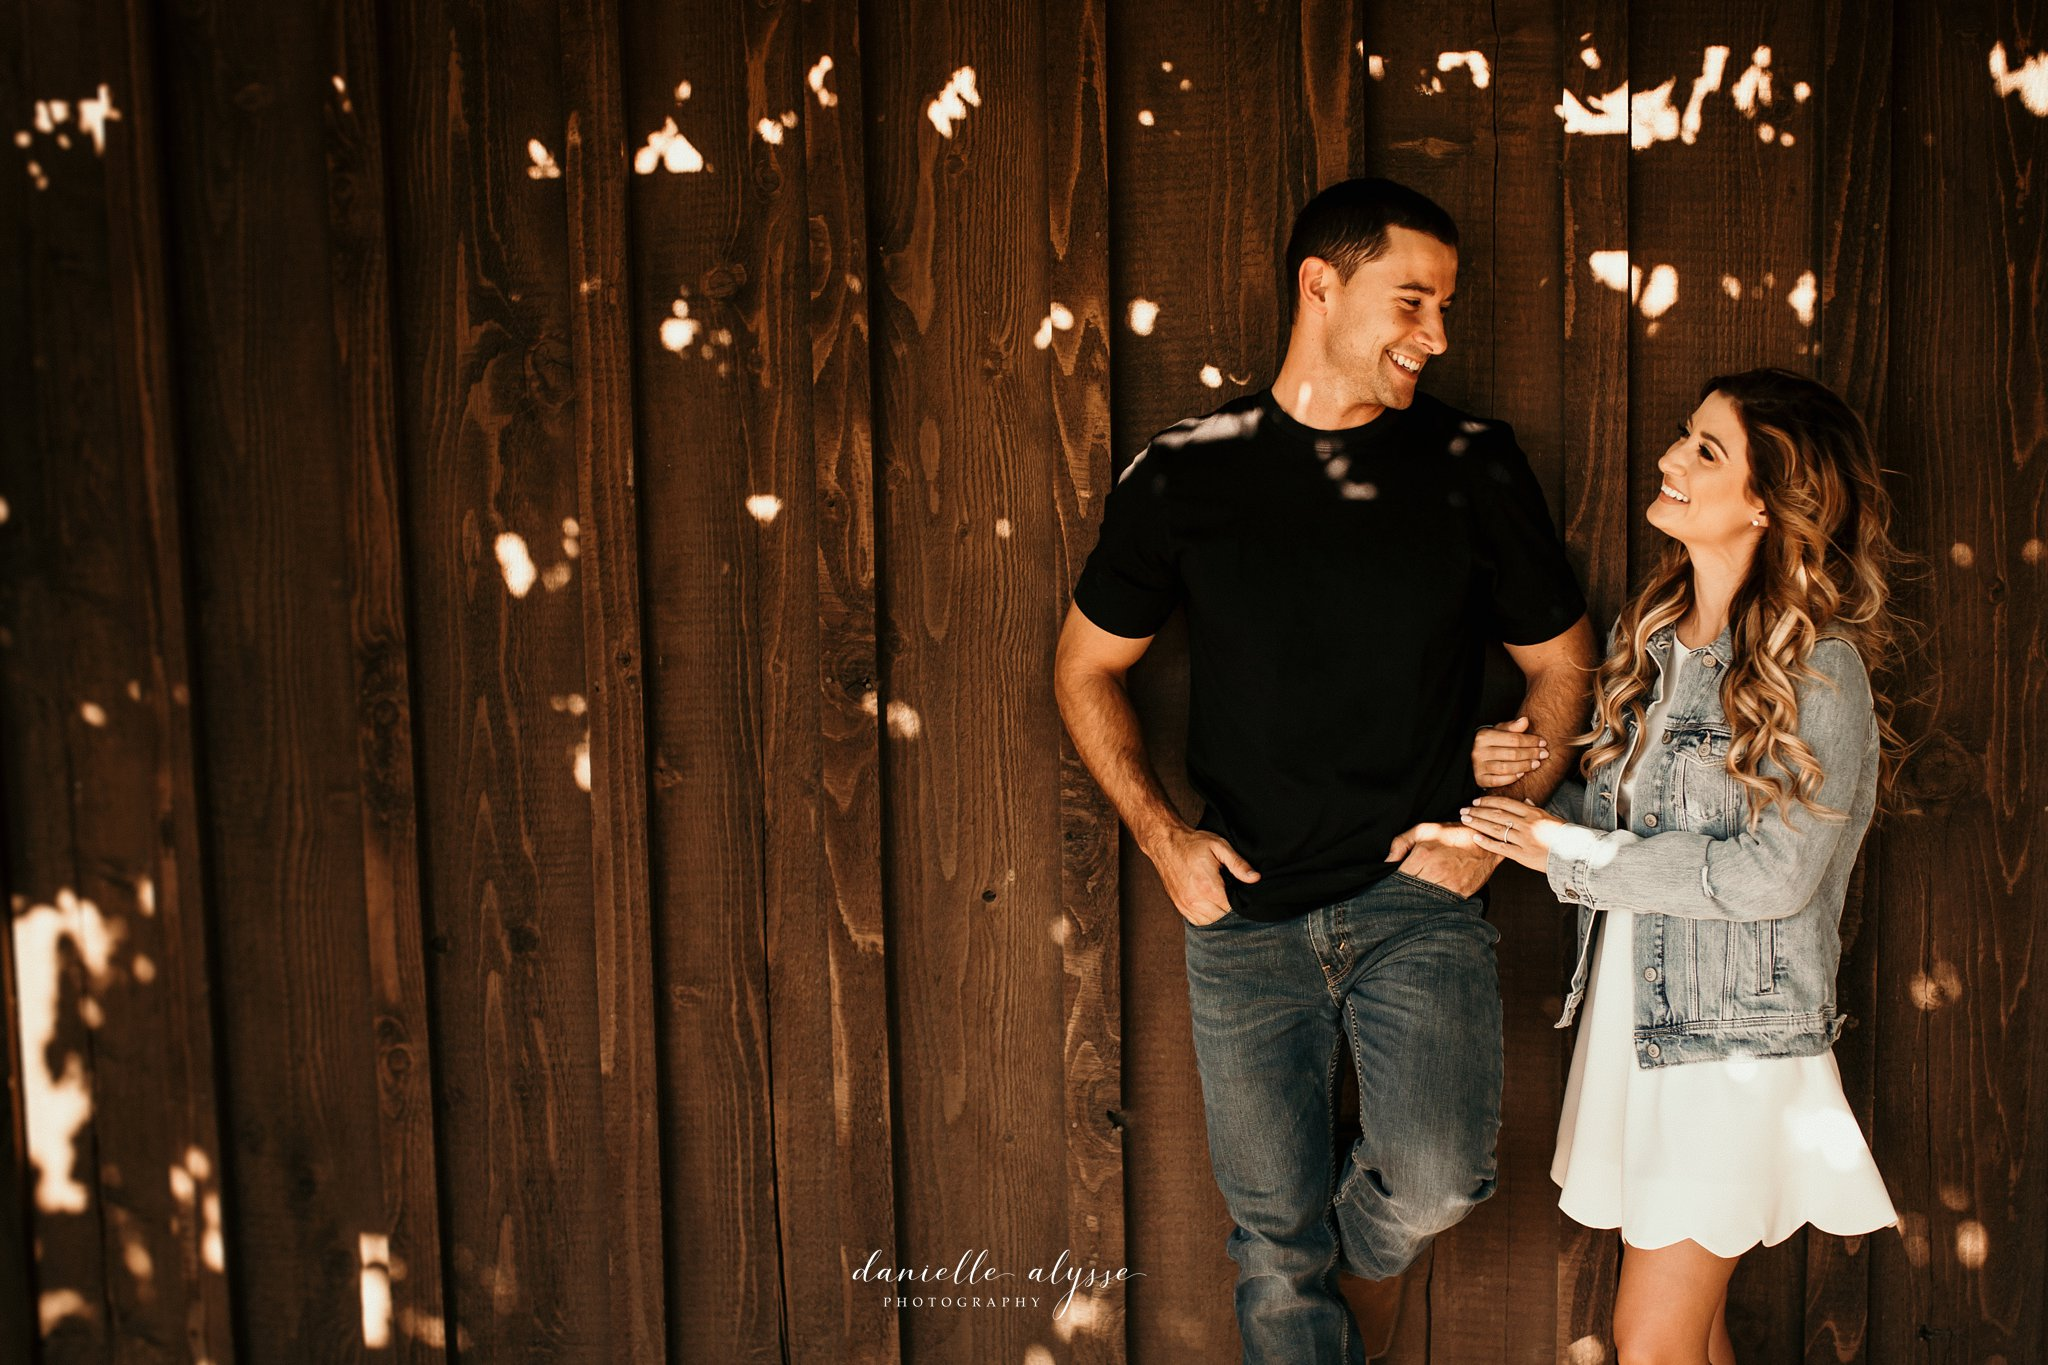 180804_engagement_katie_matt_dillon_beach_napa_danielle_alysse_photography_blog_35_WEB.jpg